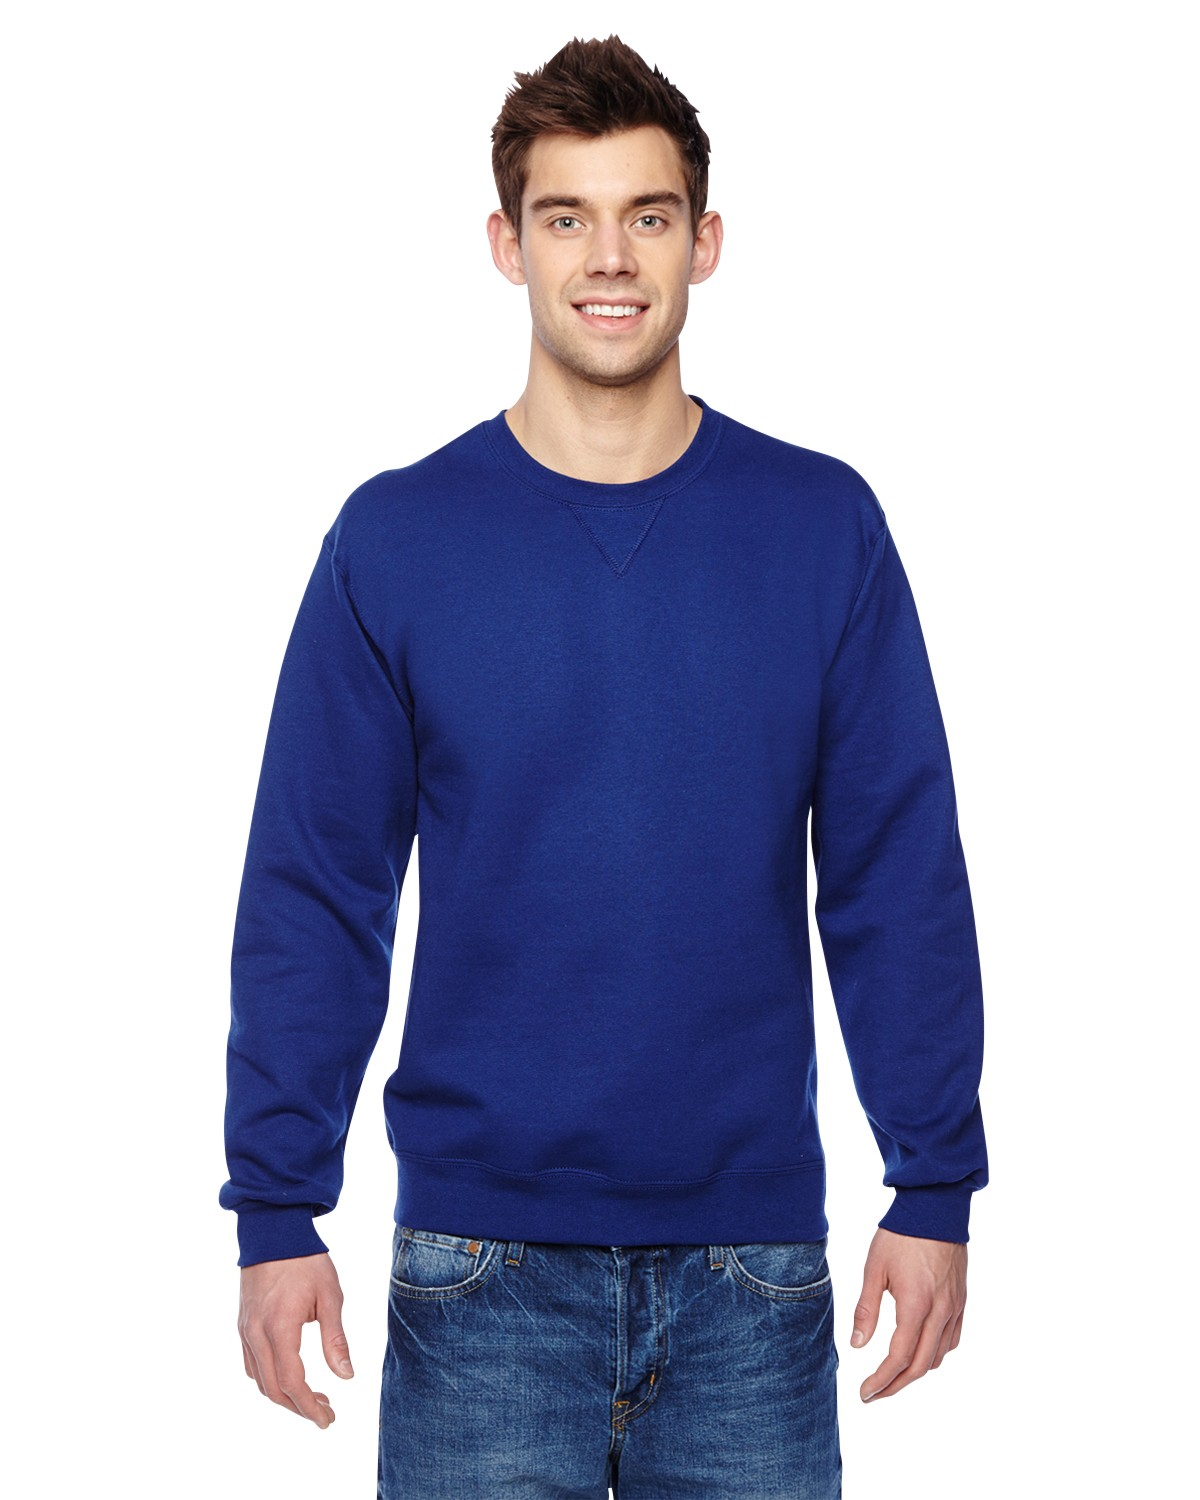 SF72R Fruit of the Loom ADMIRAL BLUE